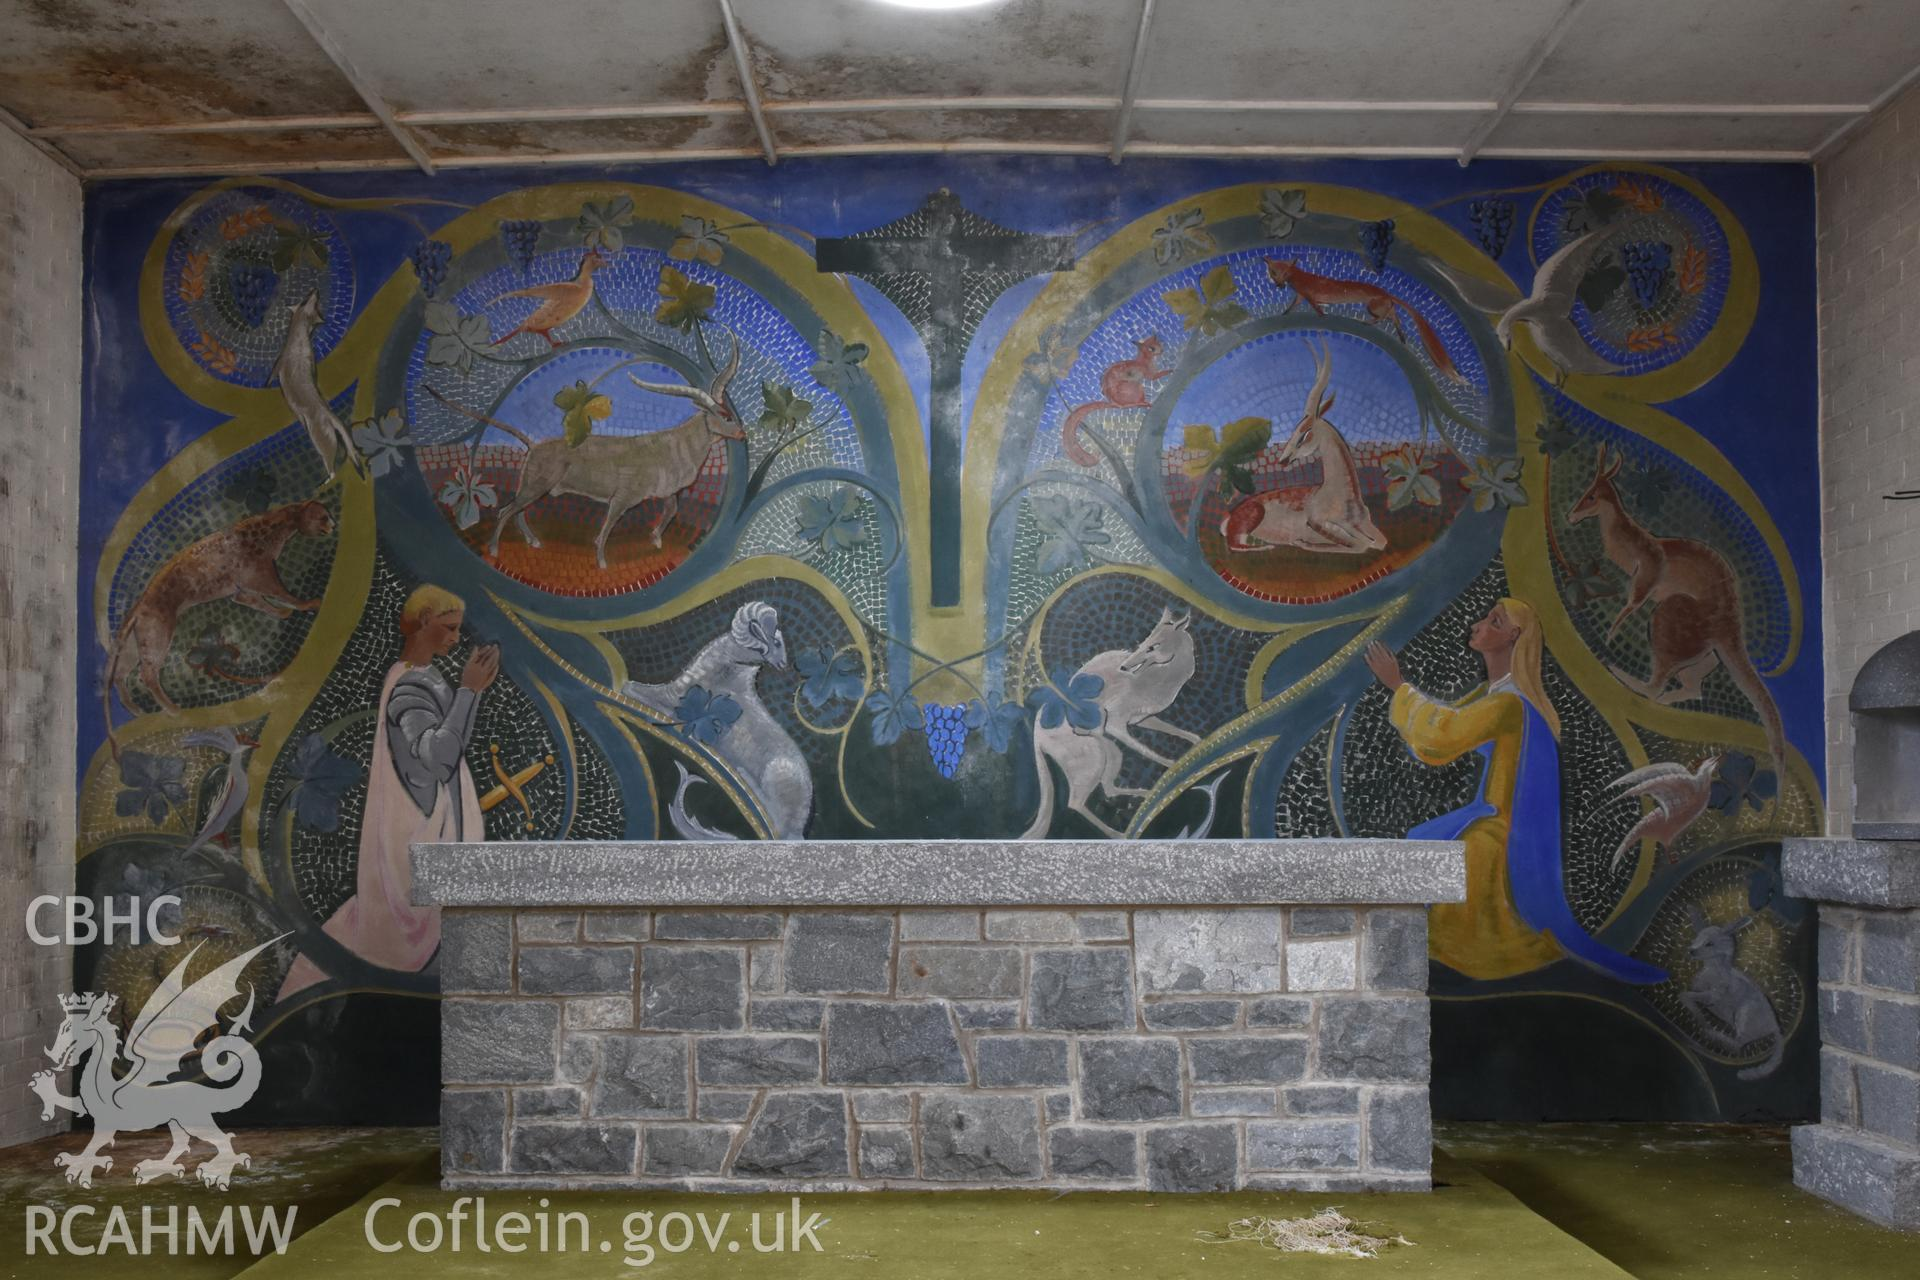 Detailed view of mural behind pulpit at the Catholic Church of the Holy Spirit, Criccieth. Photographed during survey conducted by Sue Fielding for the RCAHMW, 21st January 2019.